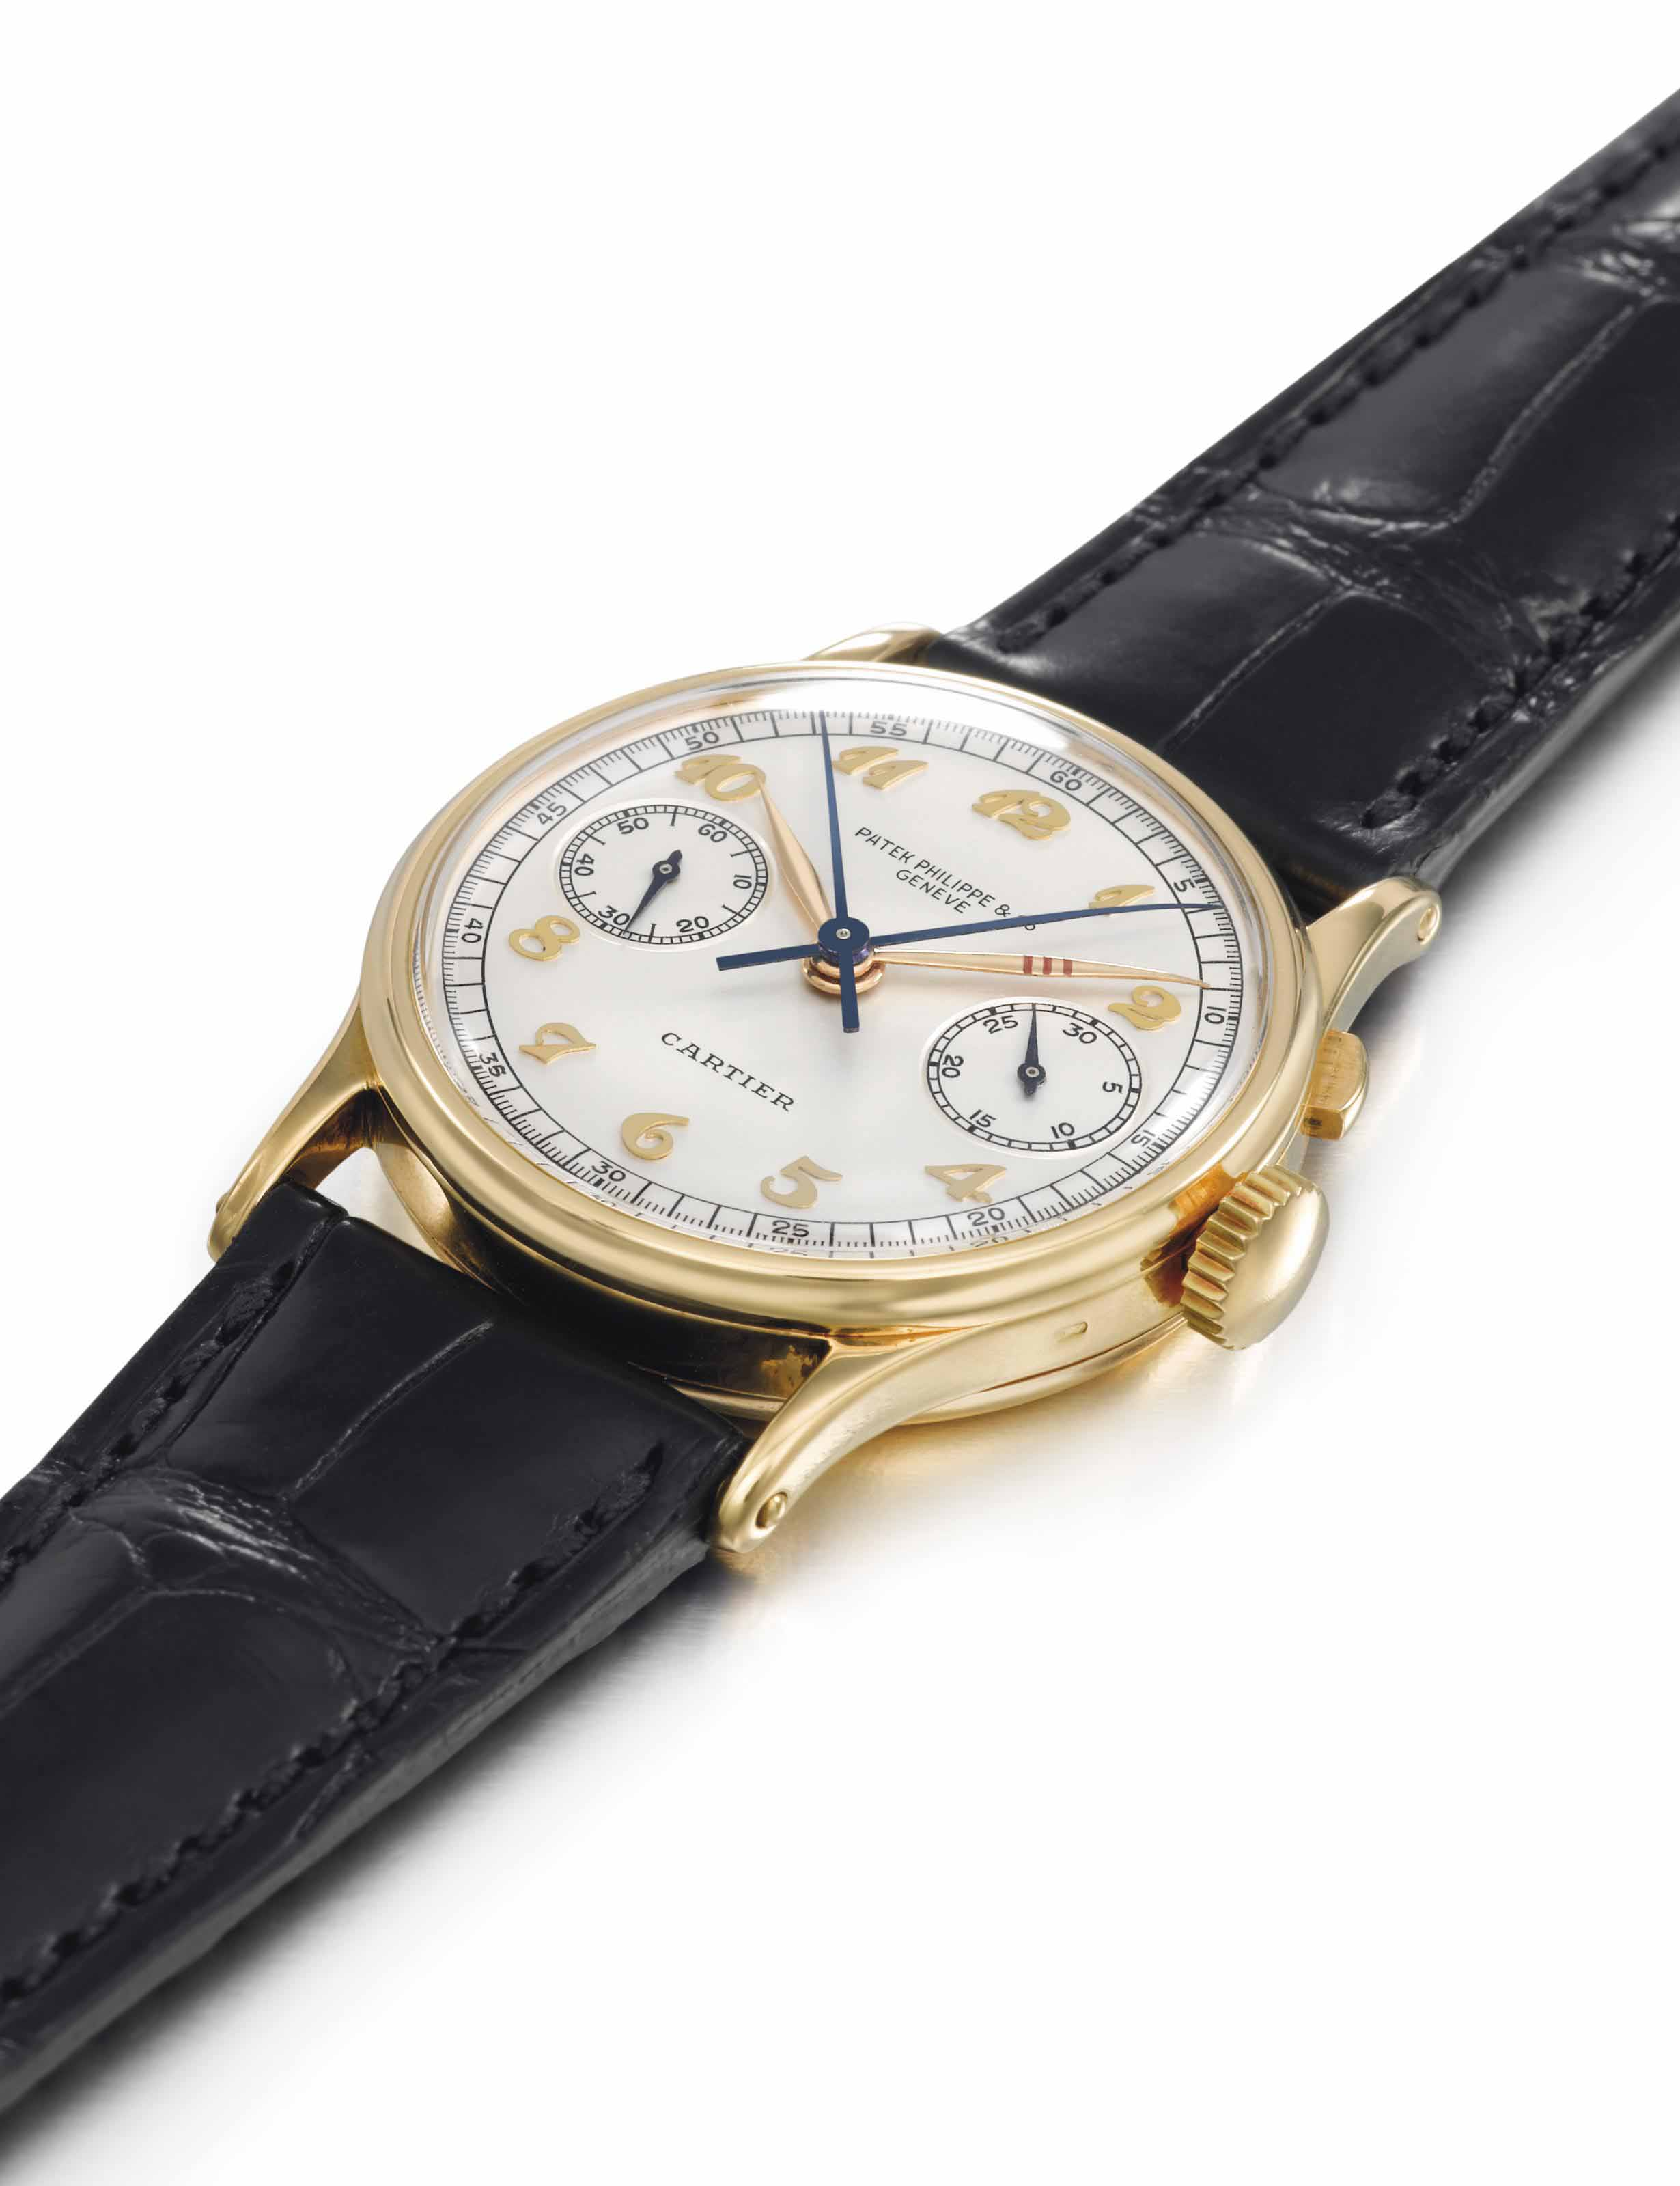 PATEK PHILIPPE. AN EXCEPTIONALLY RARE AND UNIQUE 18K GOLD WRISTWATCH WITH SINGLE BUTTON SPLIT-SECONDS CHRONOGRAPH, MADE ESPECIALLY FOR WILLIAM E. BOEING